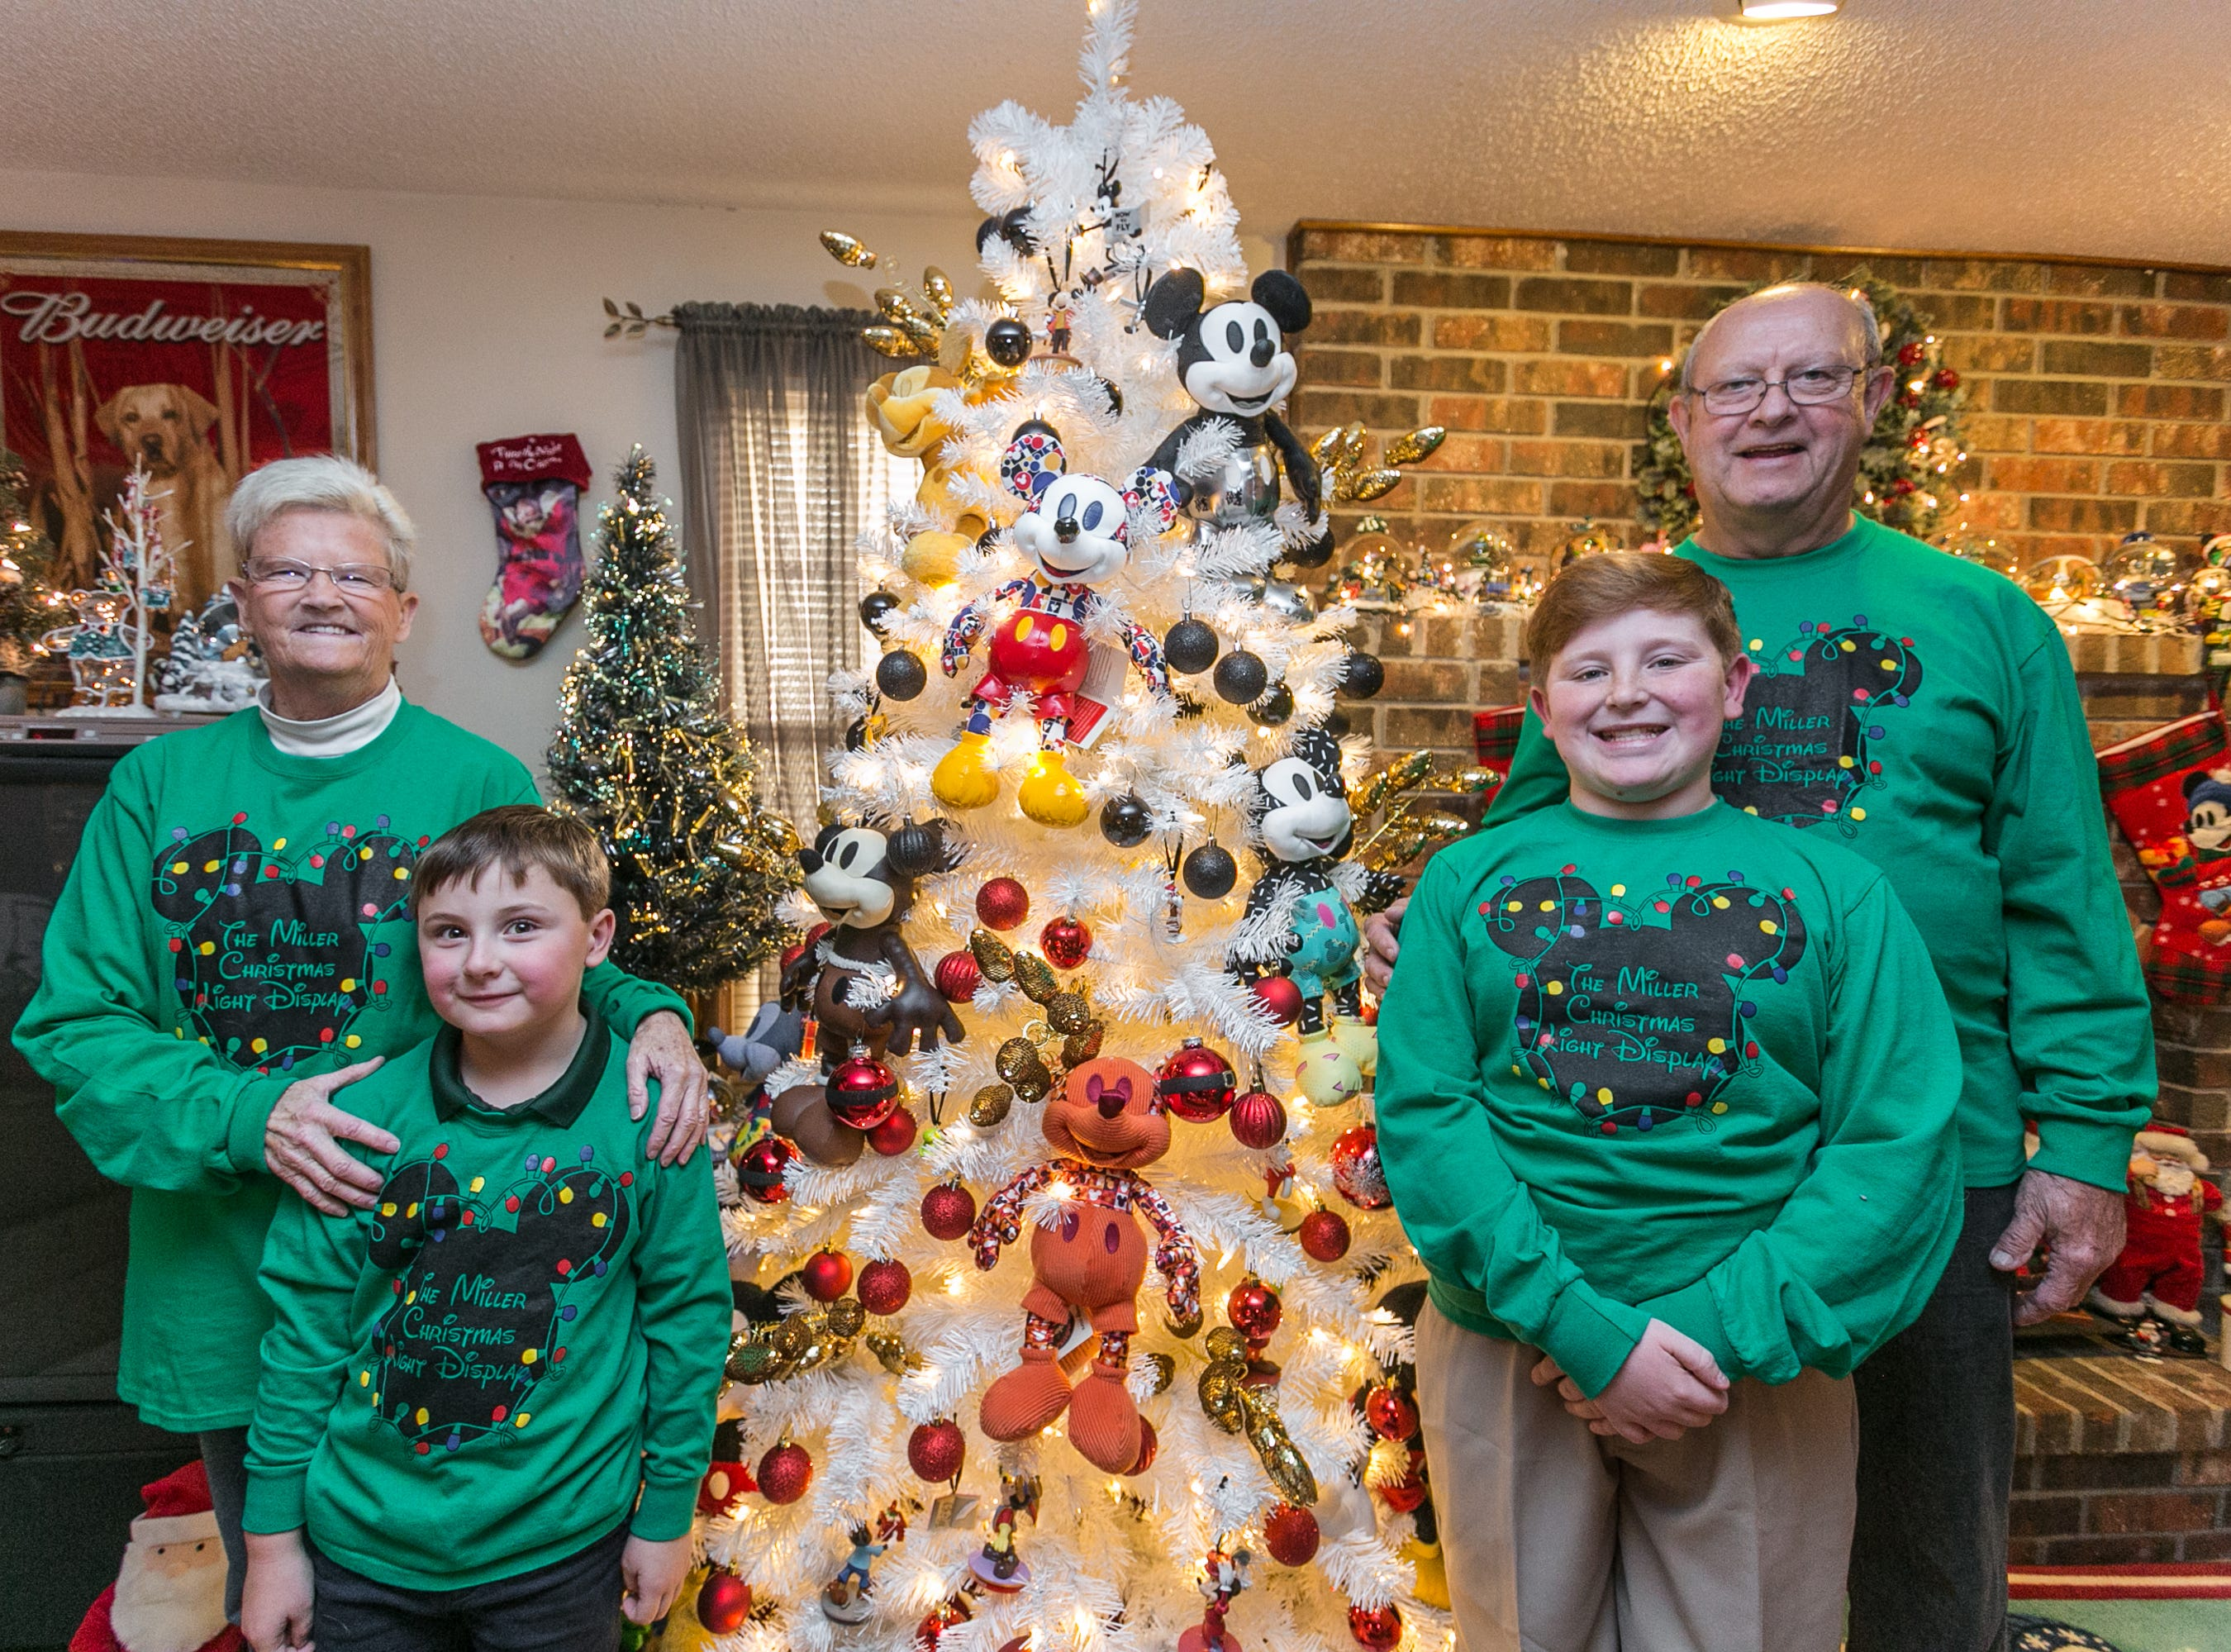 Donna and Paul Miller decorate their home in an elaborate Disney theme each year in large part for grandsons Wyler, left,  and Brody Tillman.